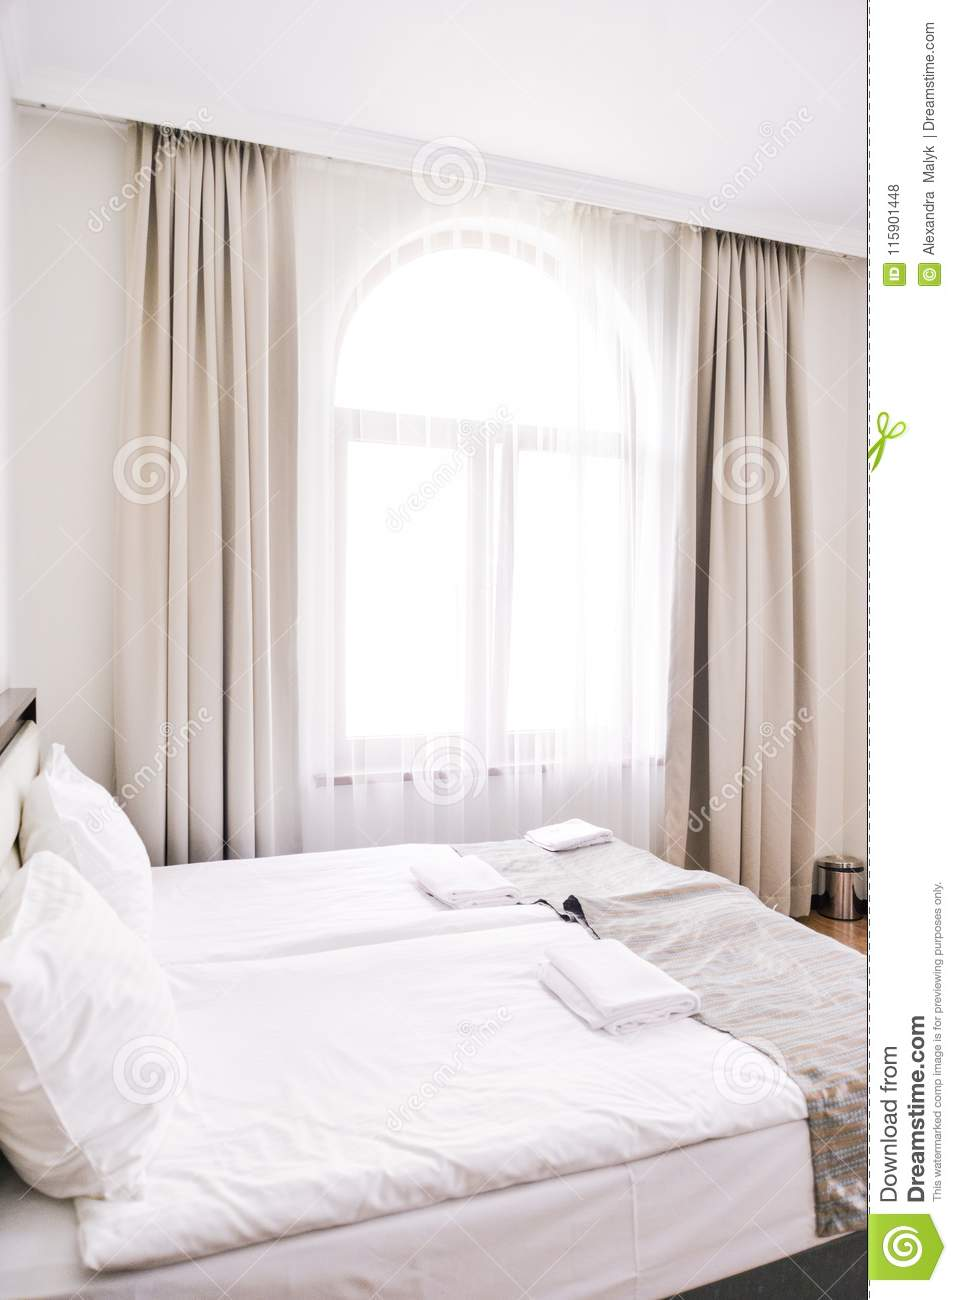 Bedroom Interior In Light And Sand Tones Bed And Window Stock Photo Image Of Monochromatic Hardwood 115901448